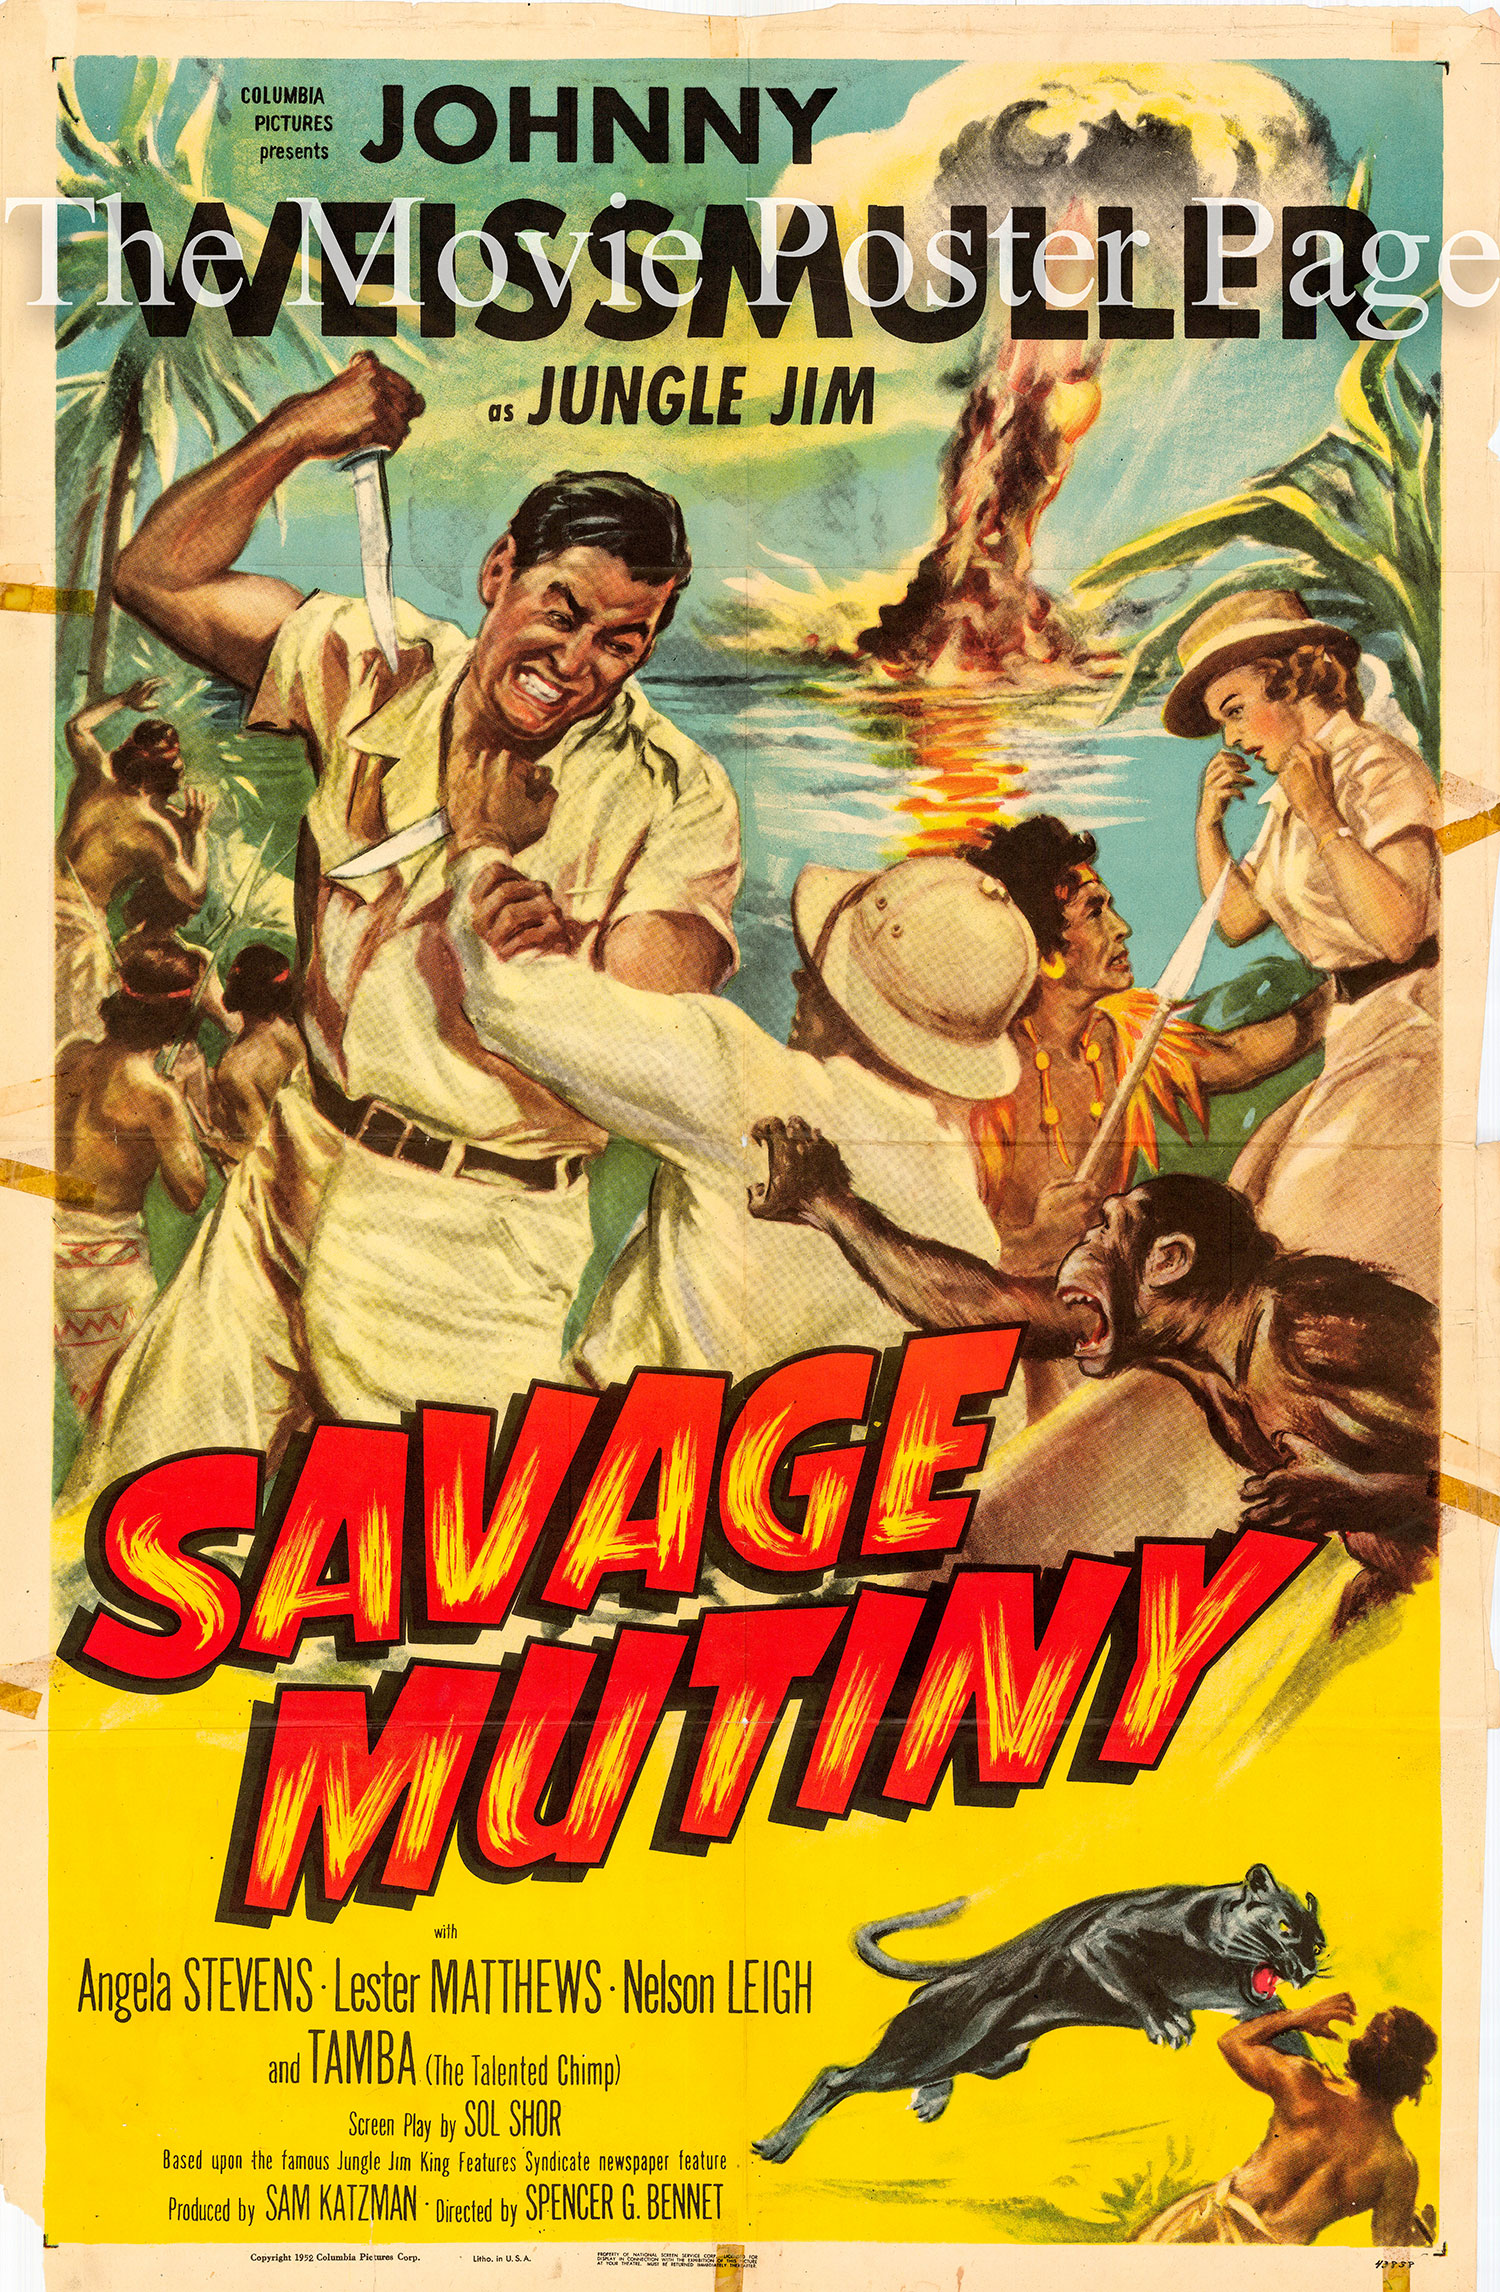 Pictured is a US one-sheet promotional poster for the 1952 Spencer Gordon Bennet Jungle Jim film Savage Mutiny starring Johnny Weissmuller.